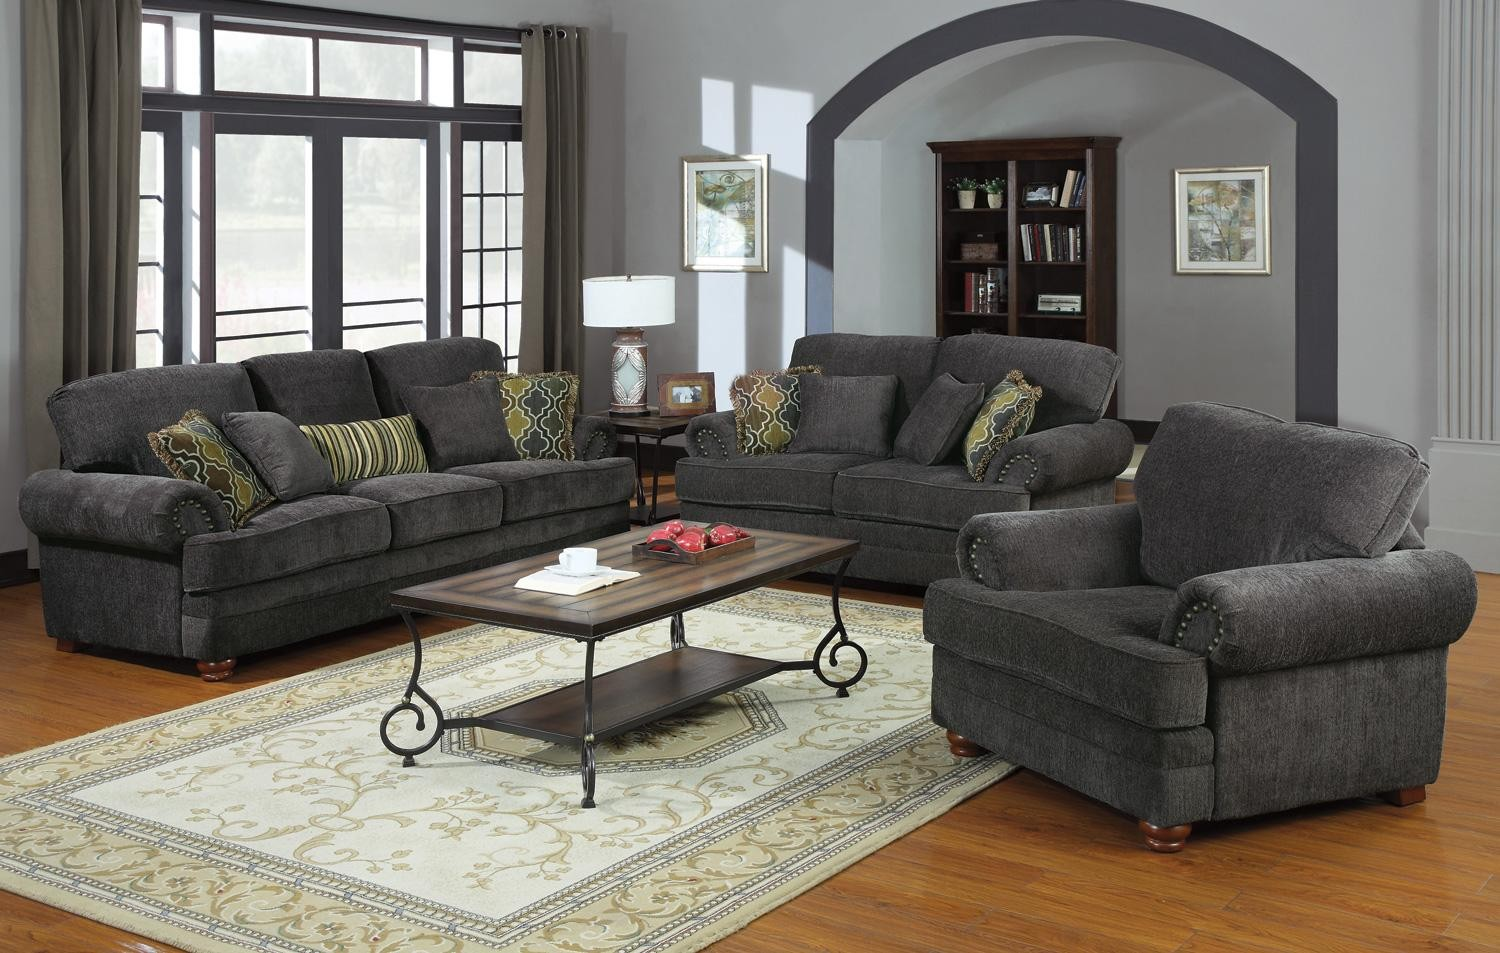 grey living room furniture colton grey living room set from coaster 504401 11795